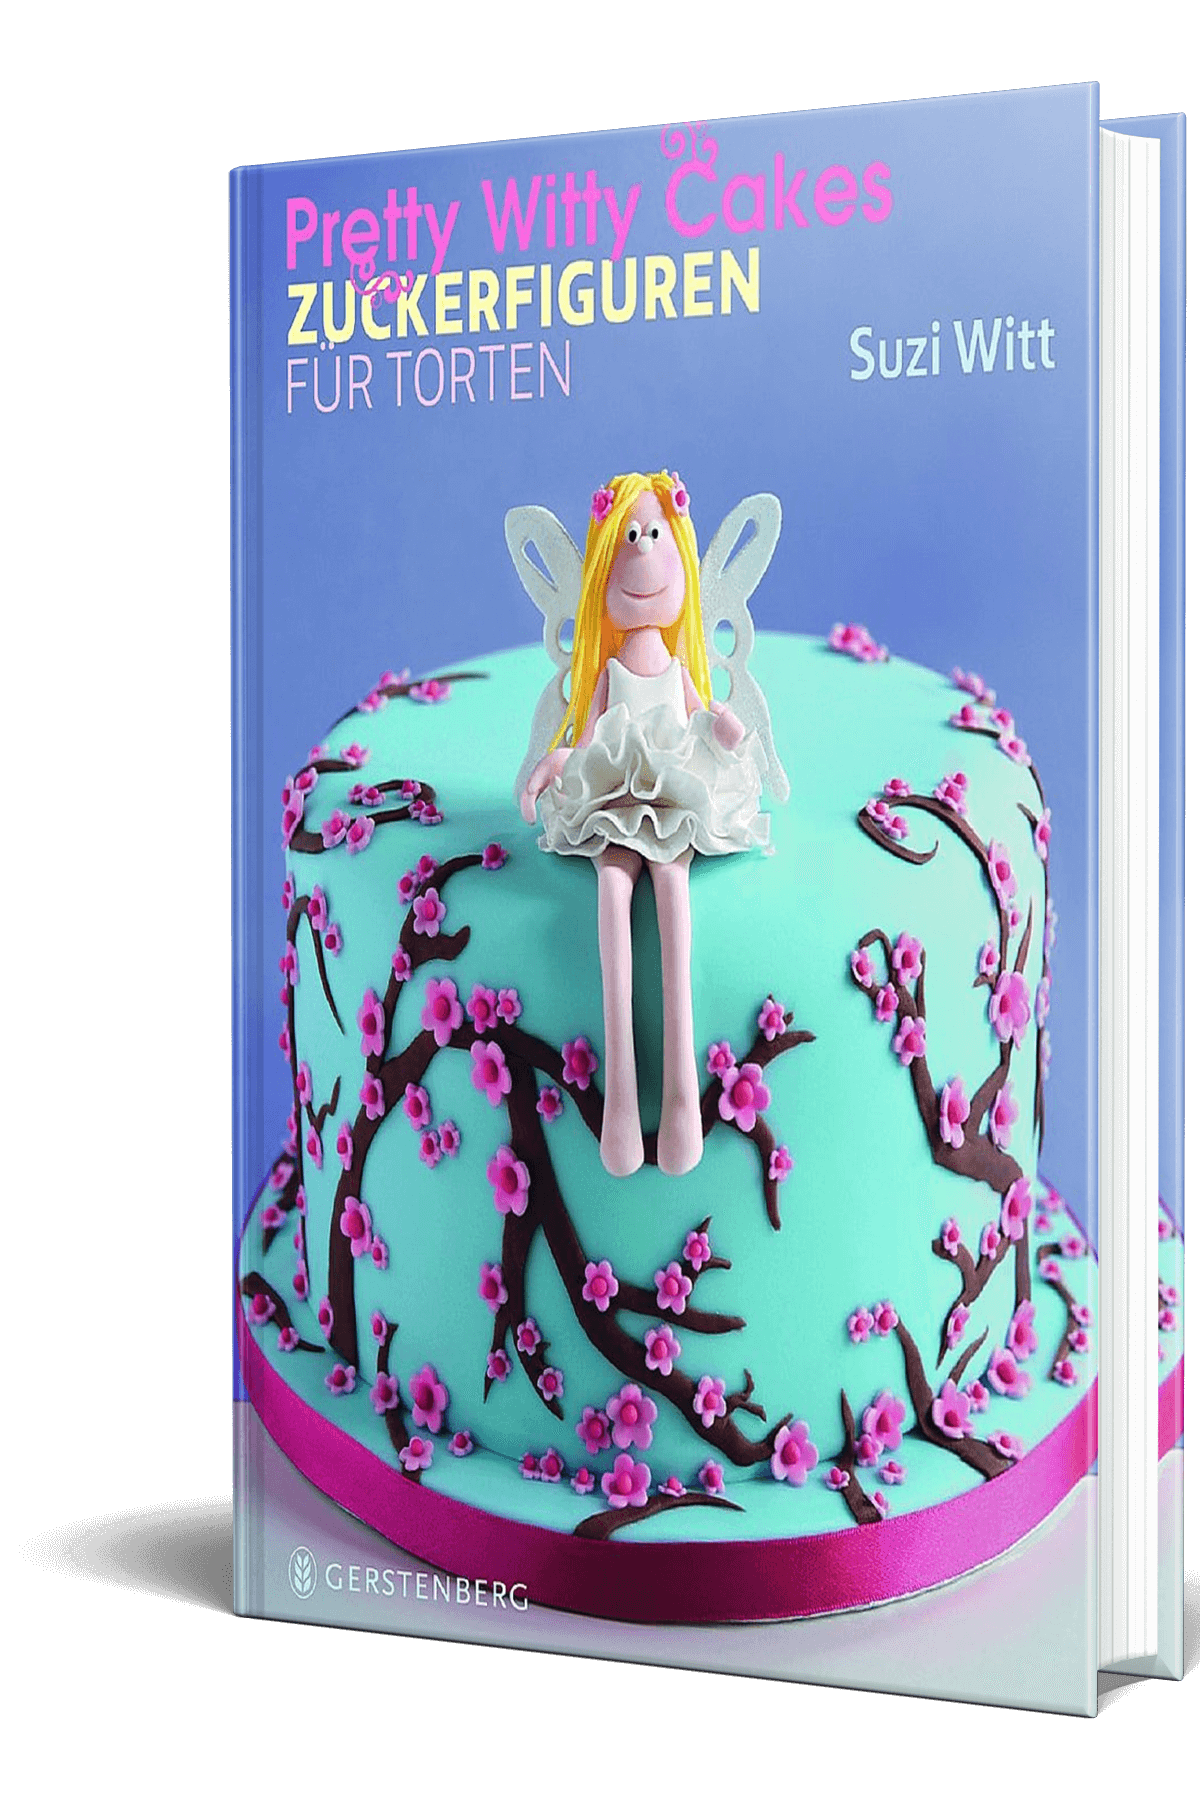 Pretty Witty Cakes German edition of Suzi Witt's book